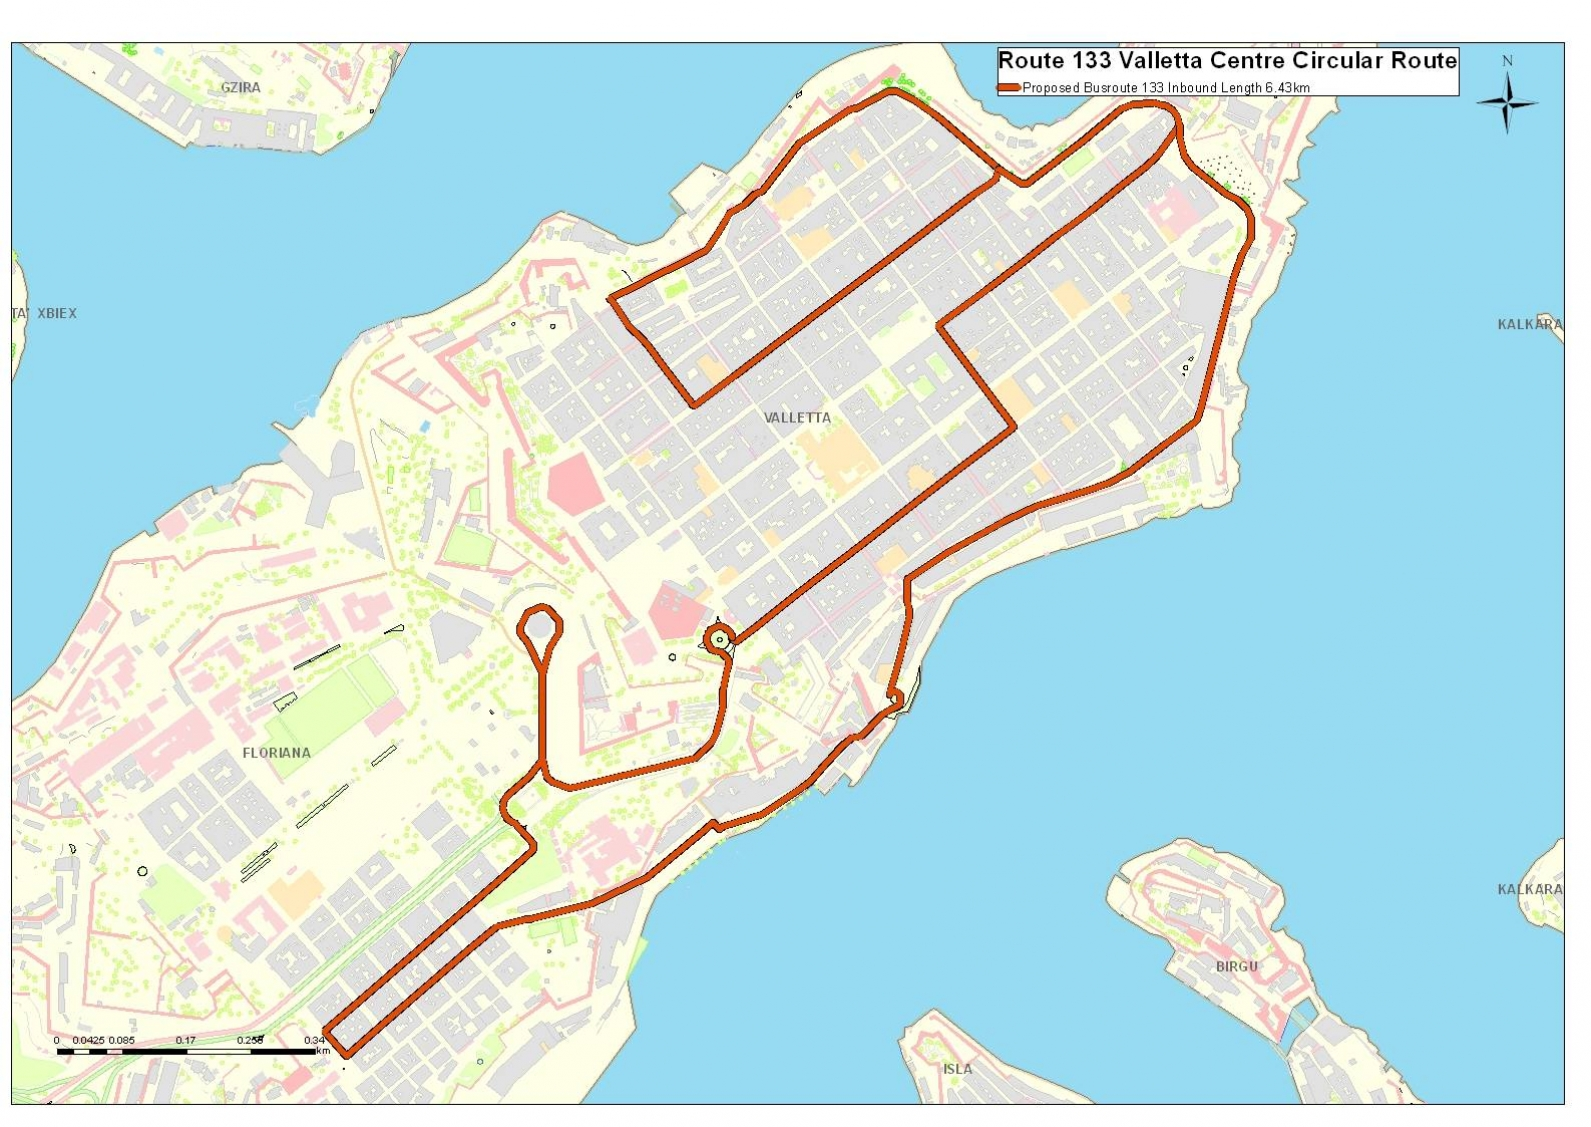 Land-current-network-routes-and-schedules-Valletta-Park-and-Ride-5